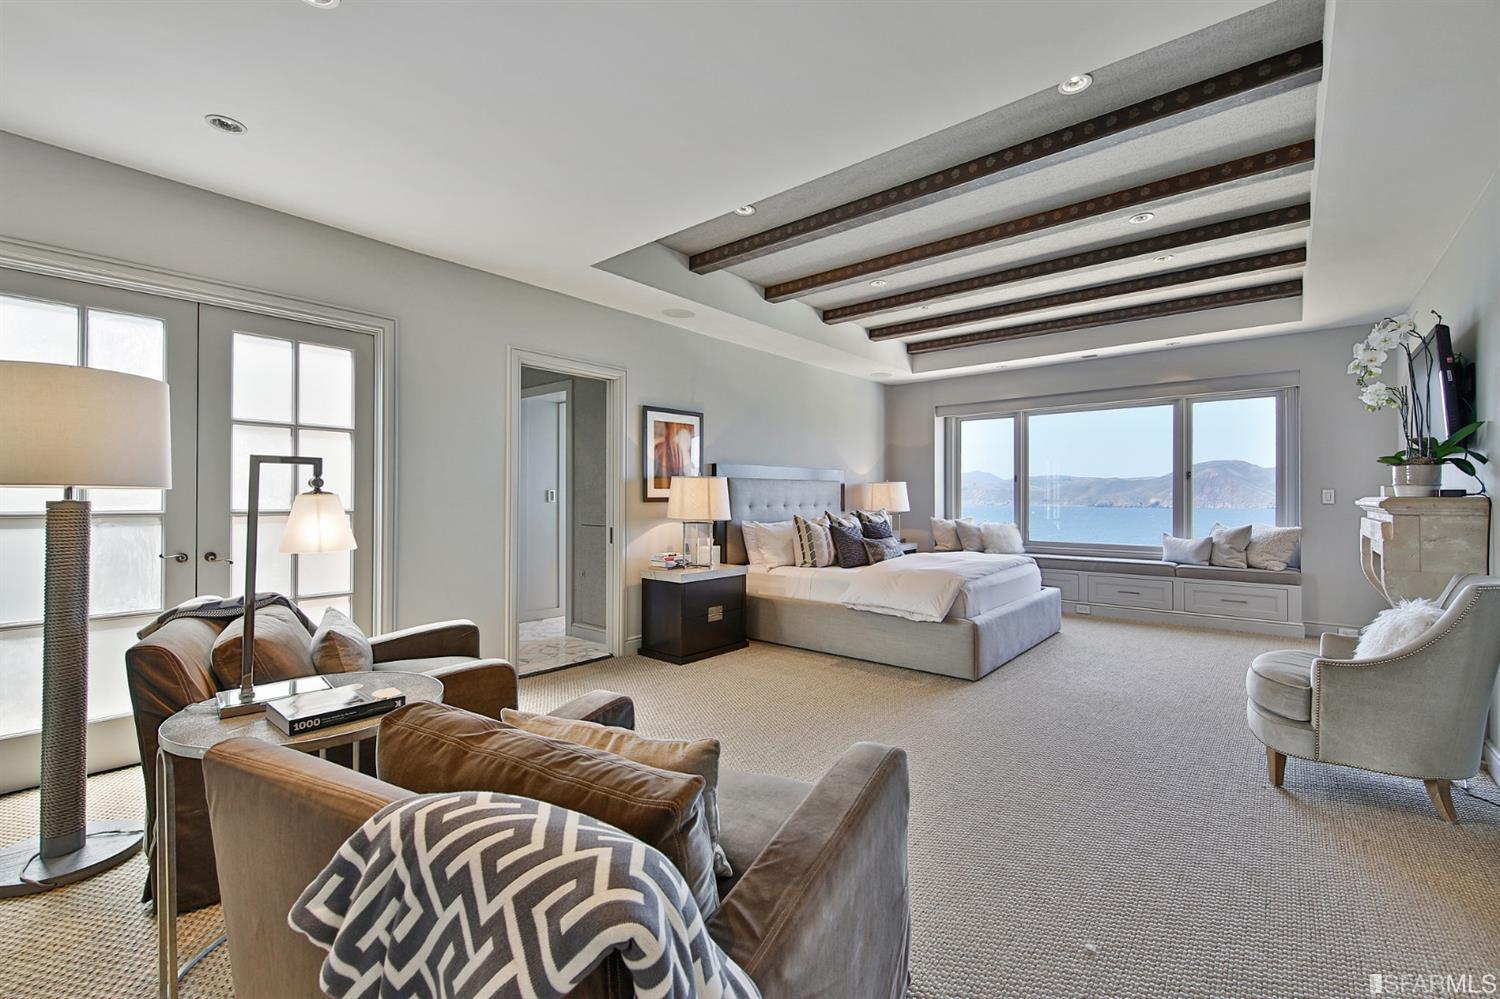 Huge master bedroom with sweeping views, gas fireplace, en-suite bath, walk-in closet and home office.